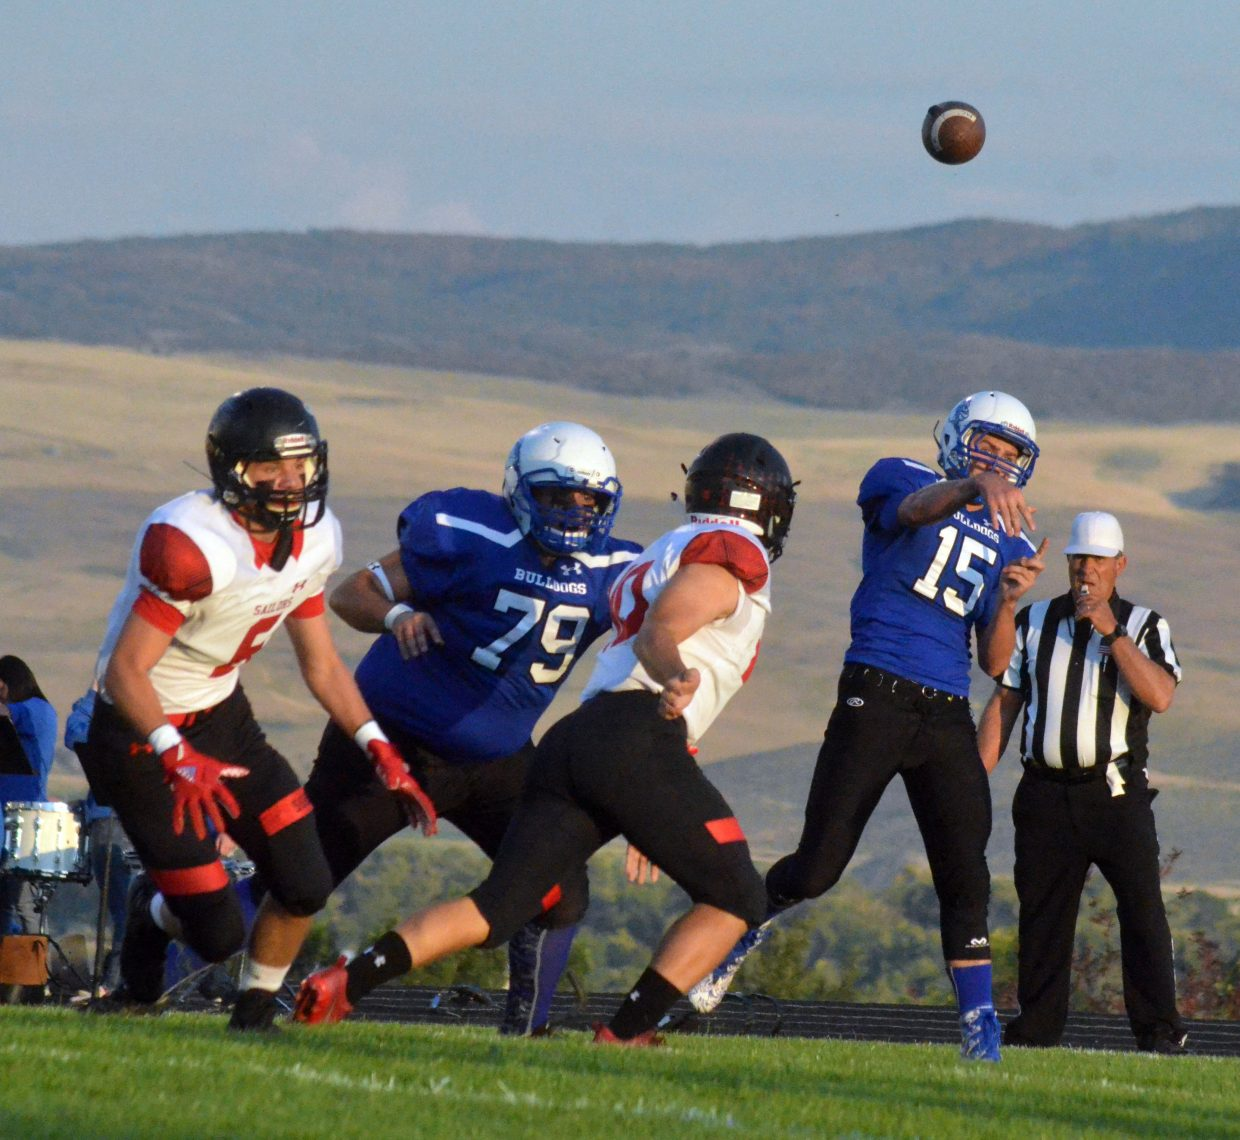 Moffat County High School's Colby Beaver lets loose a long pass against Steamboat Springs.